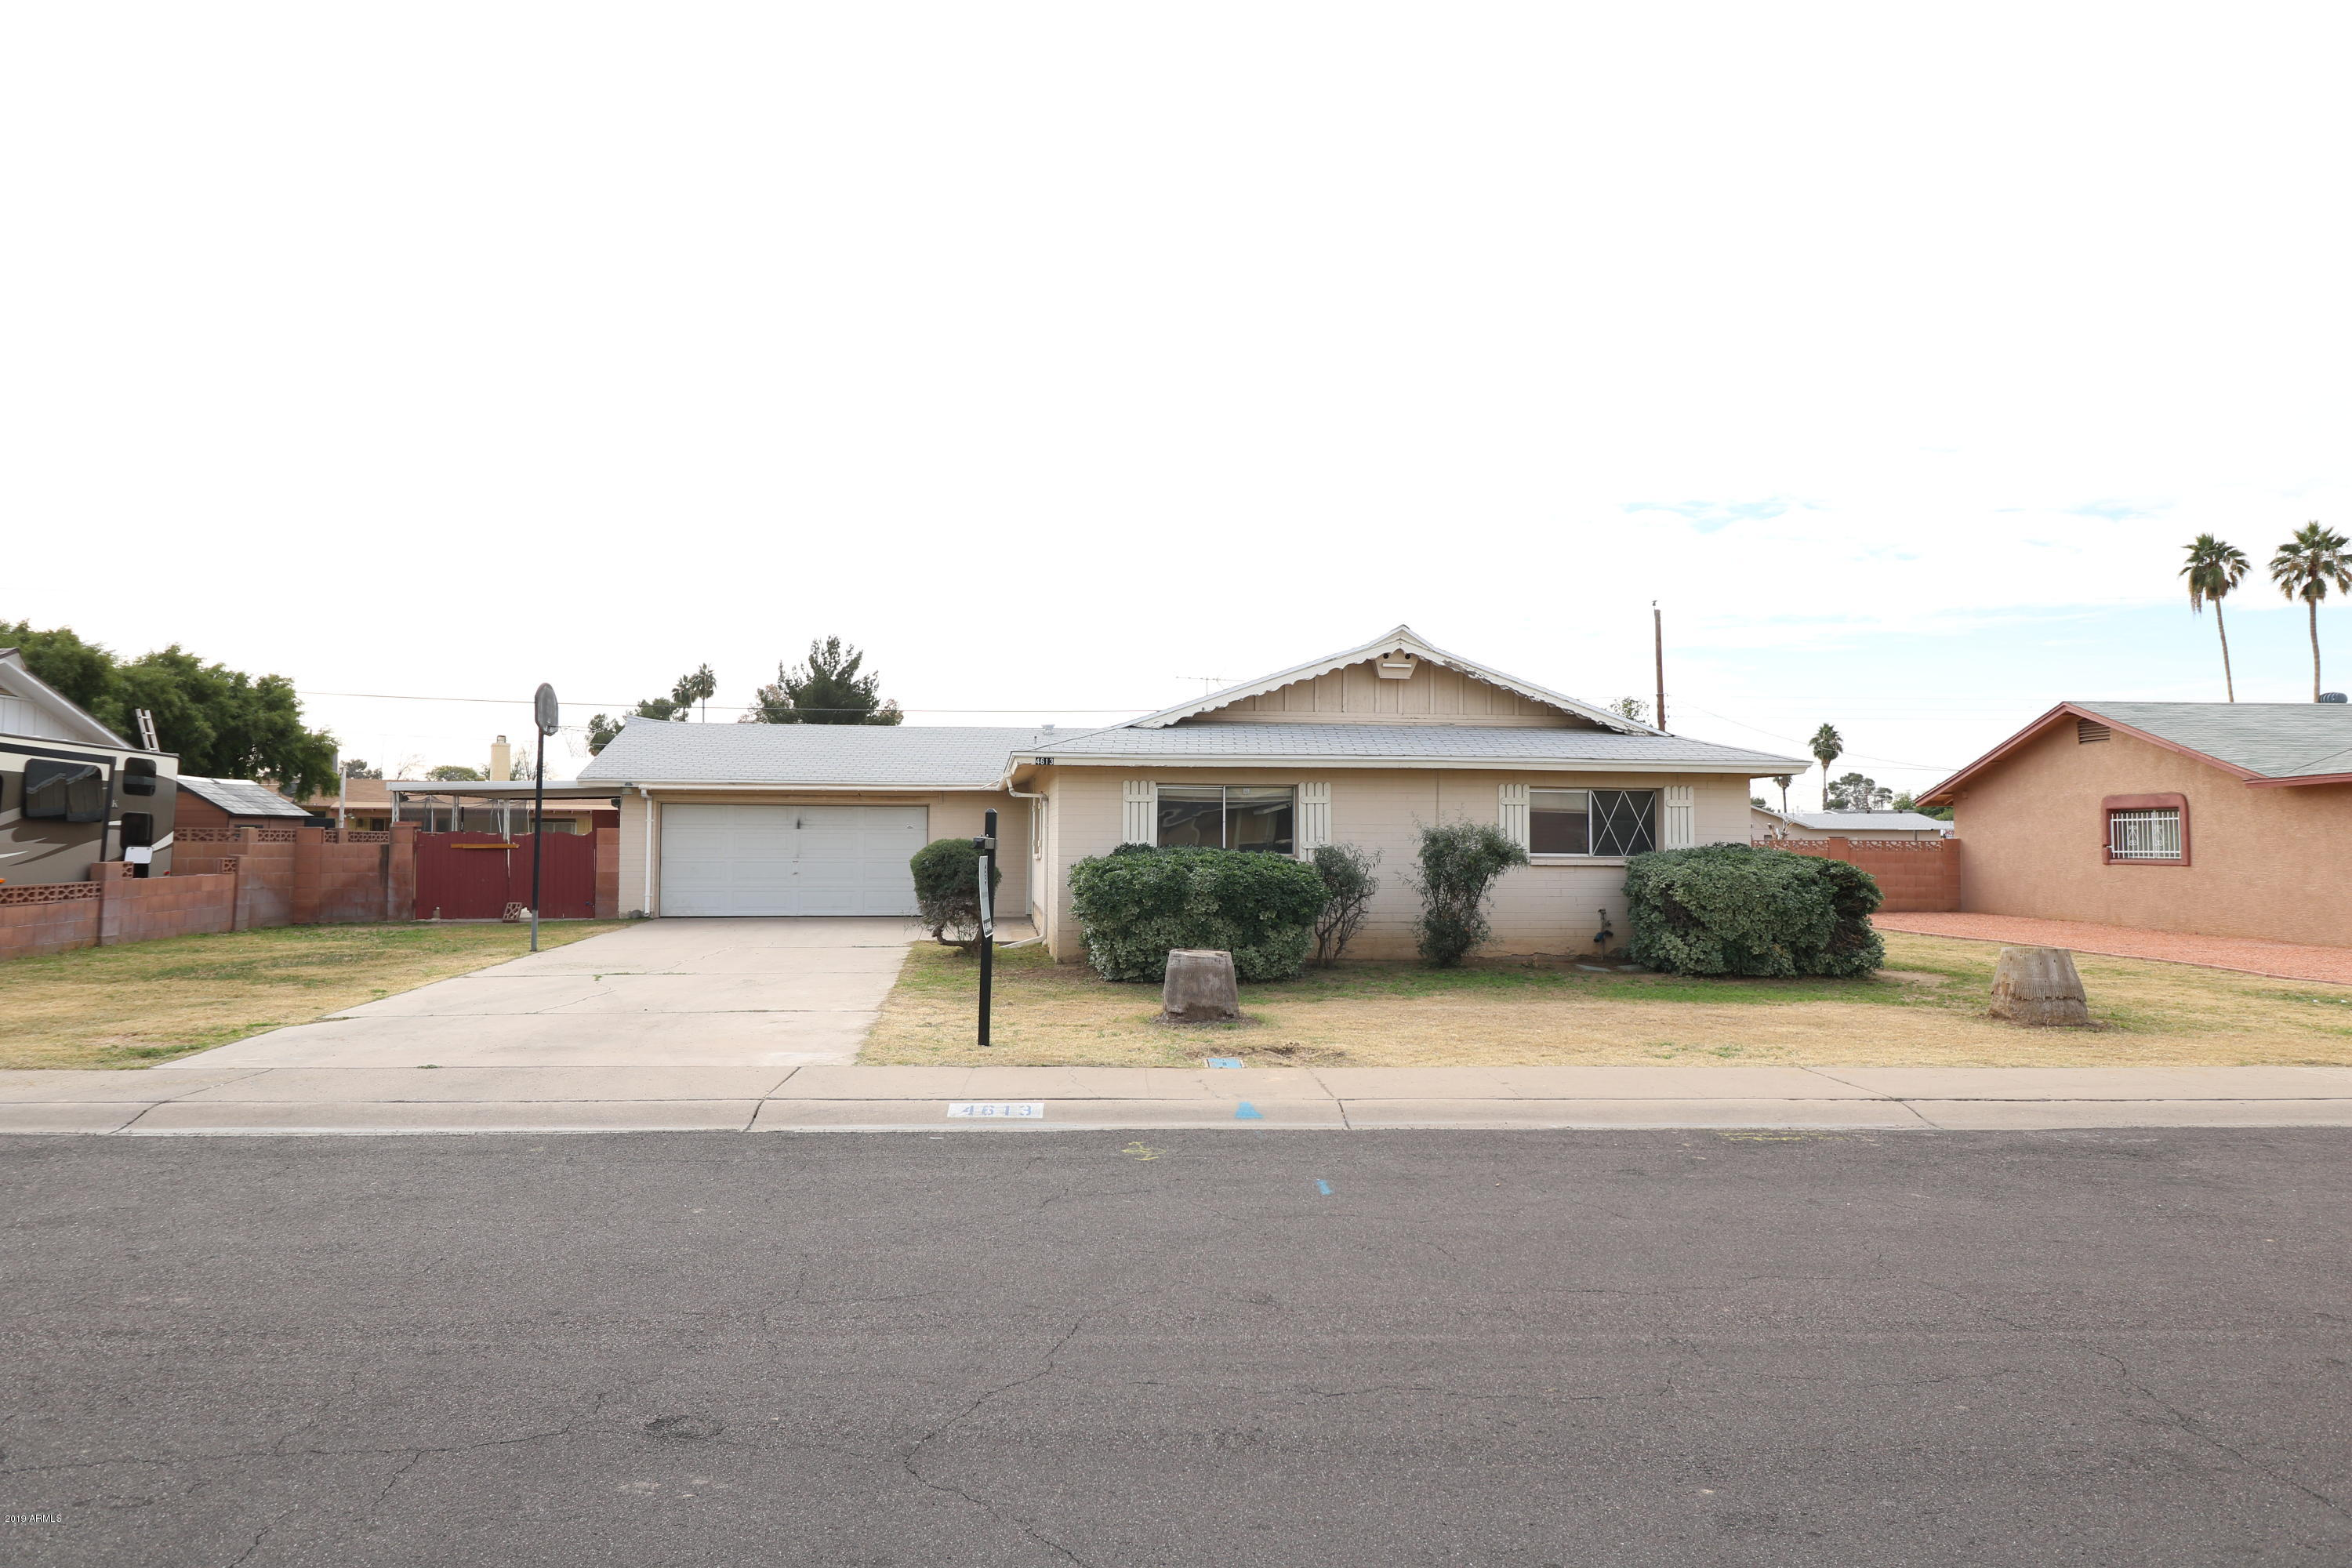 Photo of 4613 W MARLETTE Avenue, Glendale, AZ 85301